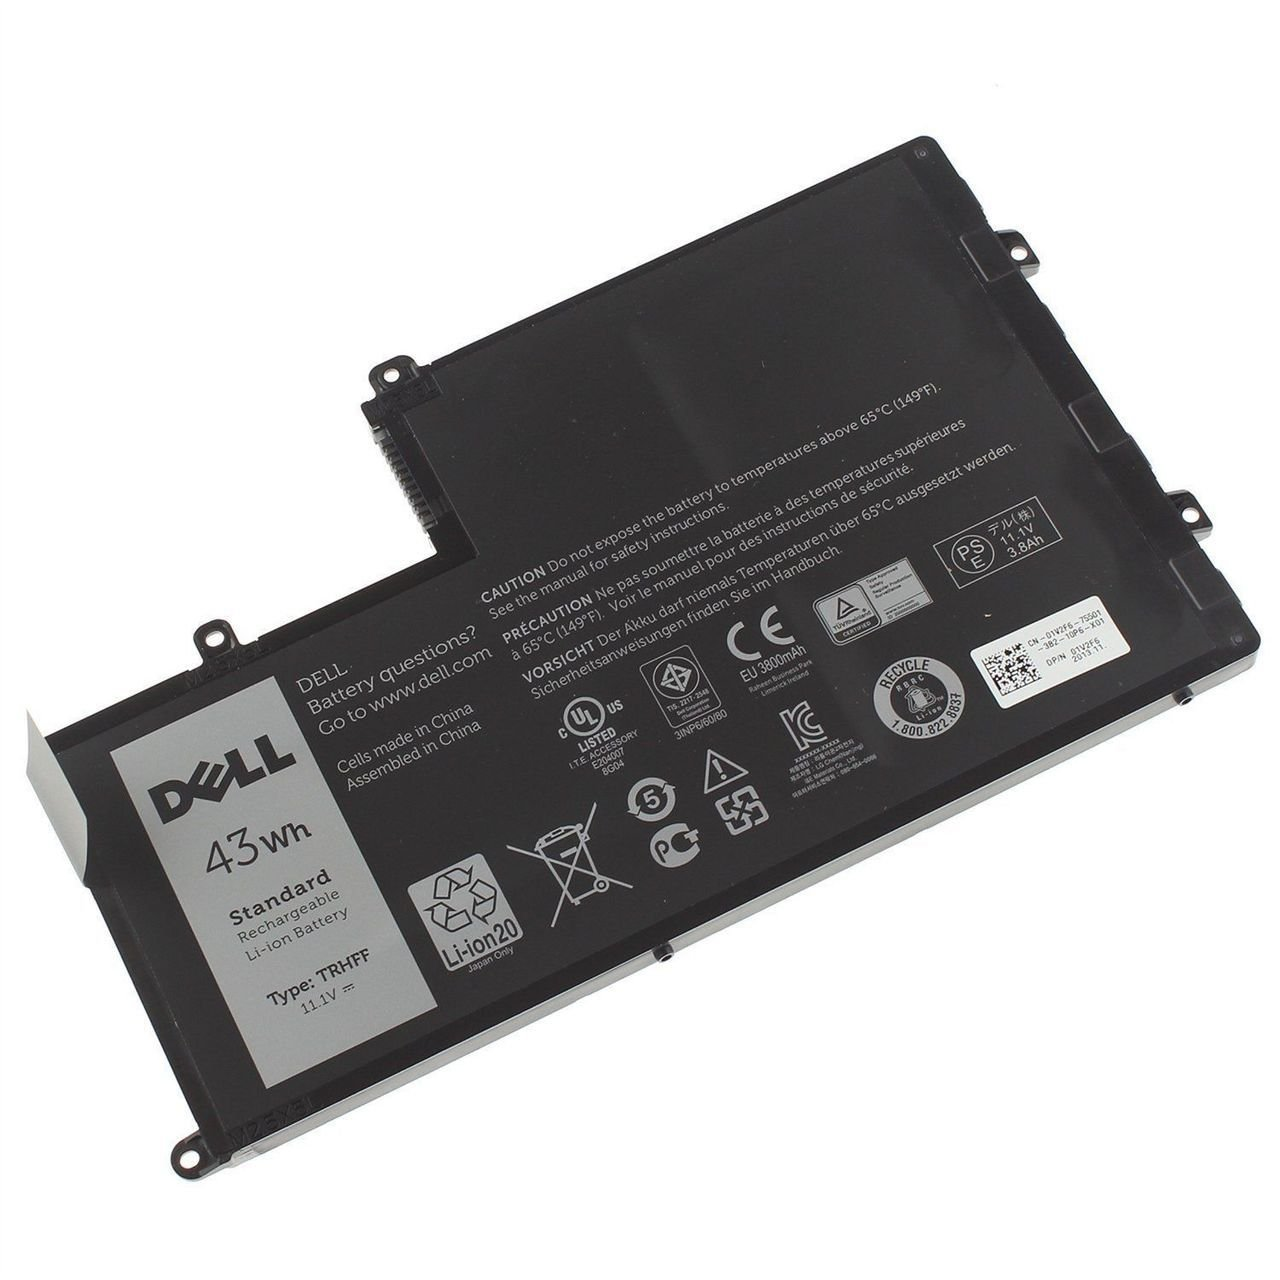 3rd Party Laptop Battery